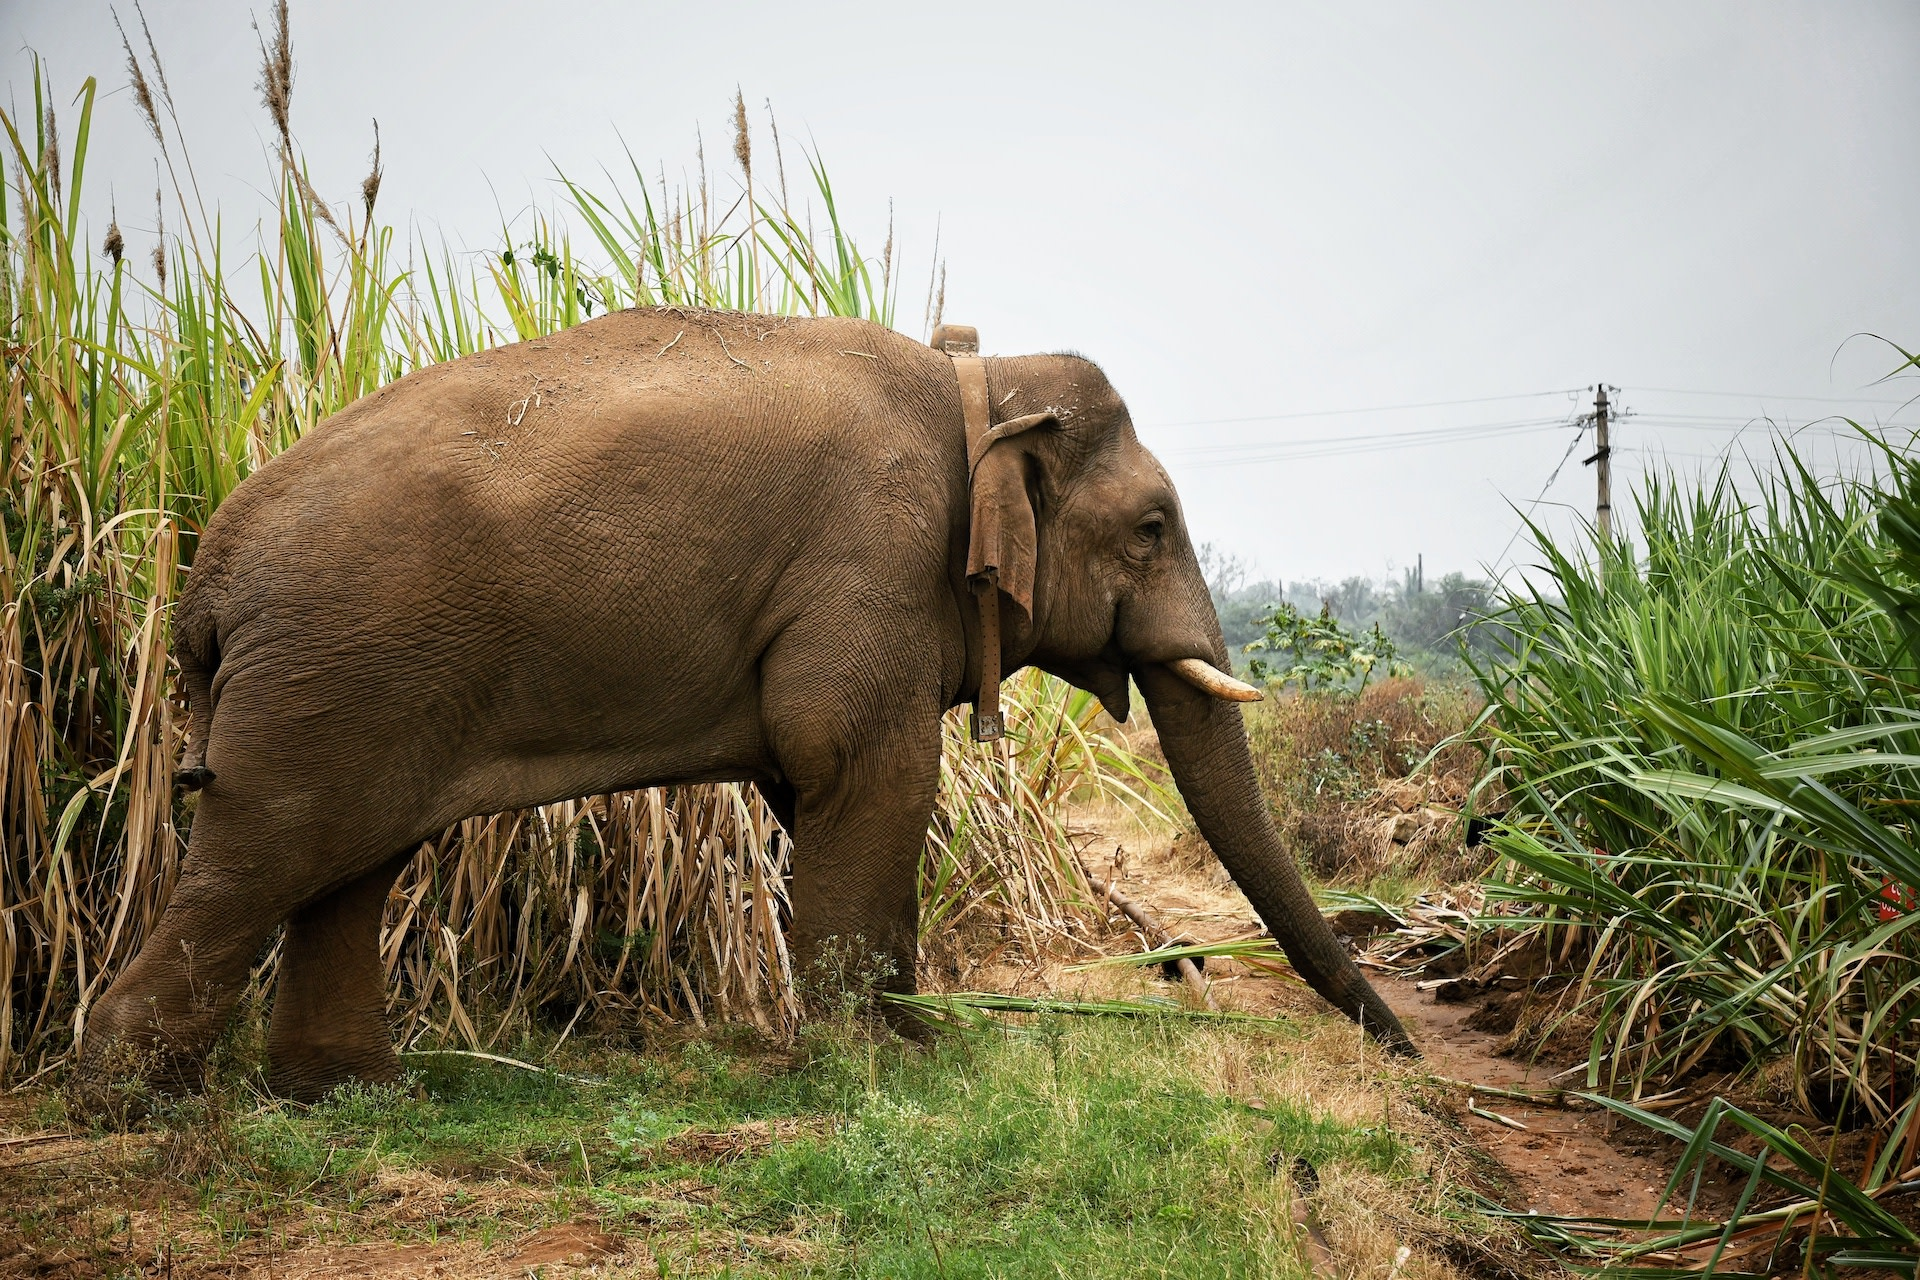 From the outskirts of Coimbatore, tusker Chinna Thambi was collared and translocated to the Anaimalais, but he had to be recaptured after he continued to frequent human habitations. In this photograph he is feeding in a sugarcane field. Photo: Sreedhar Vijayakrishnan